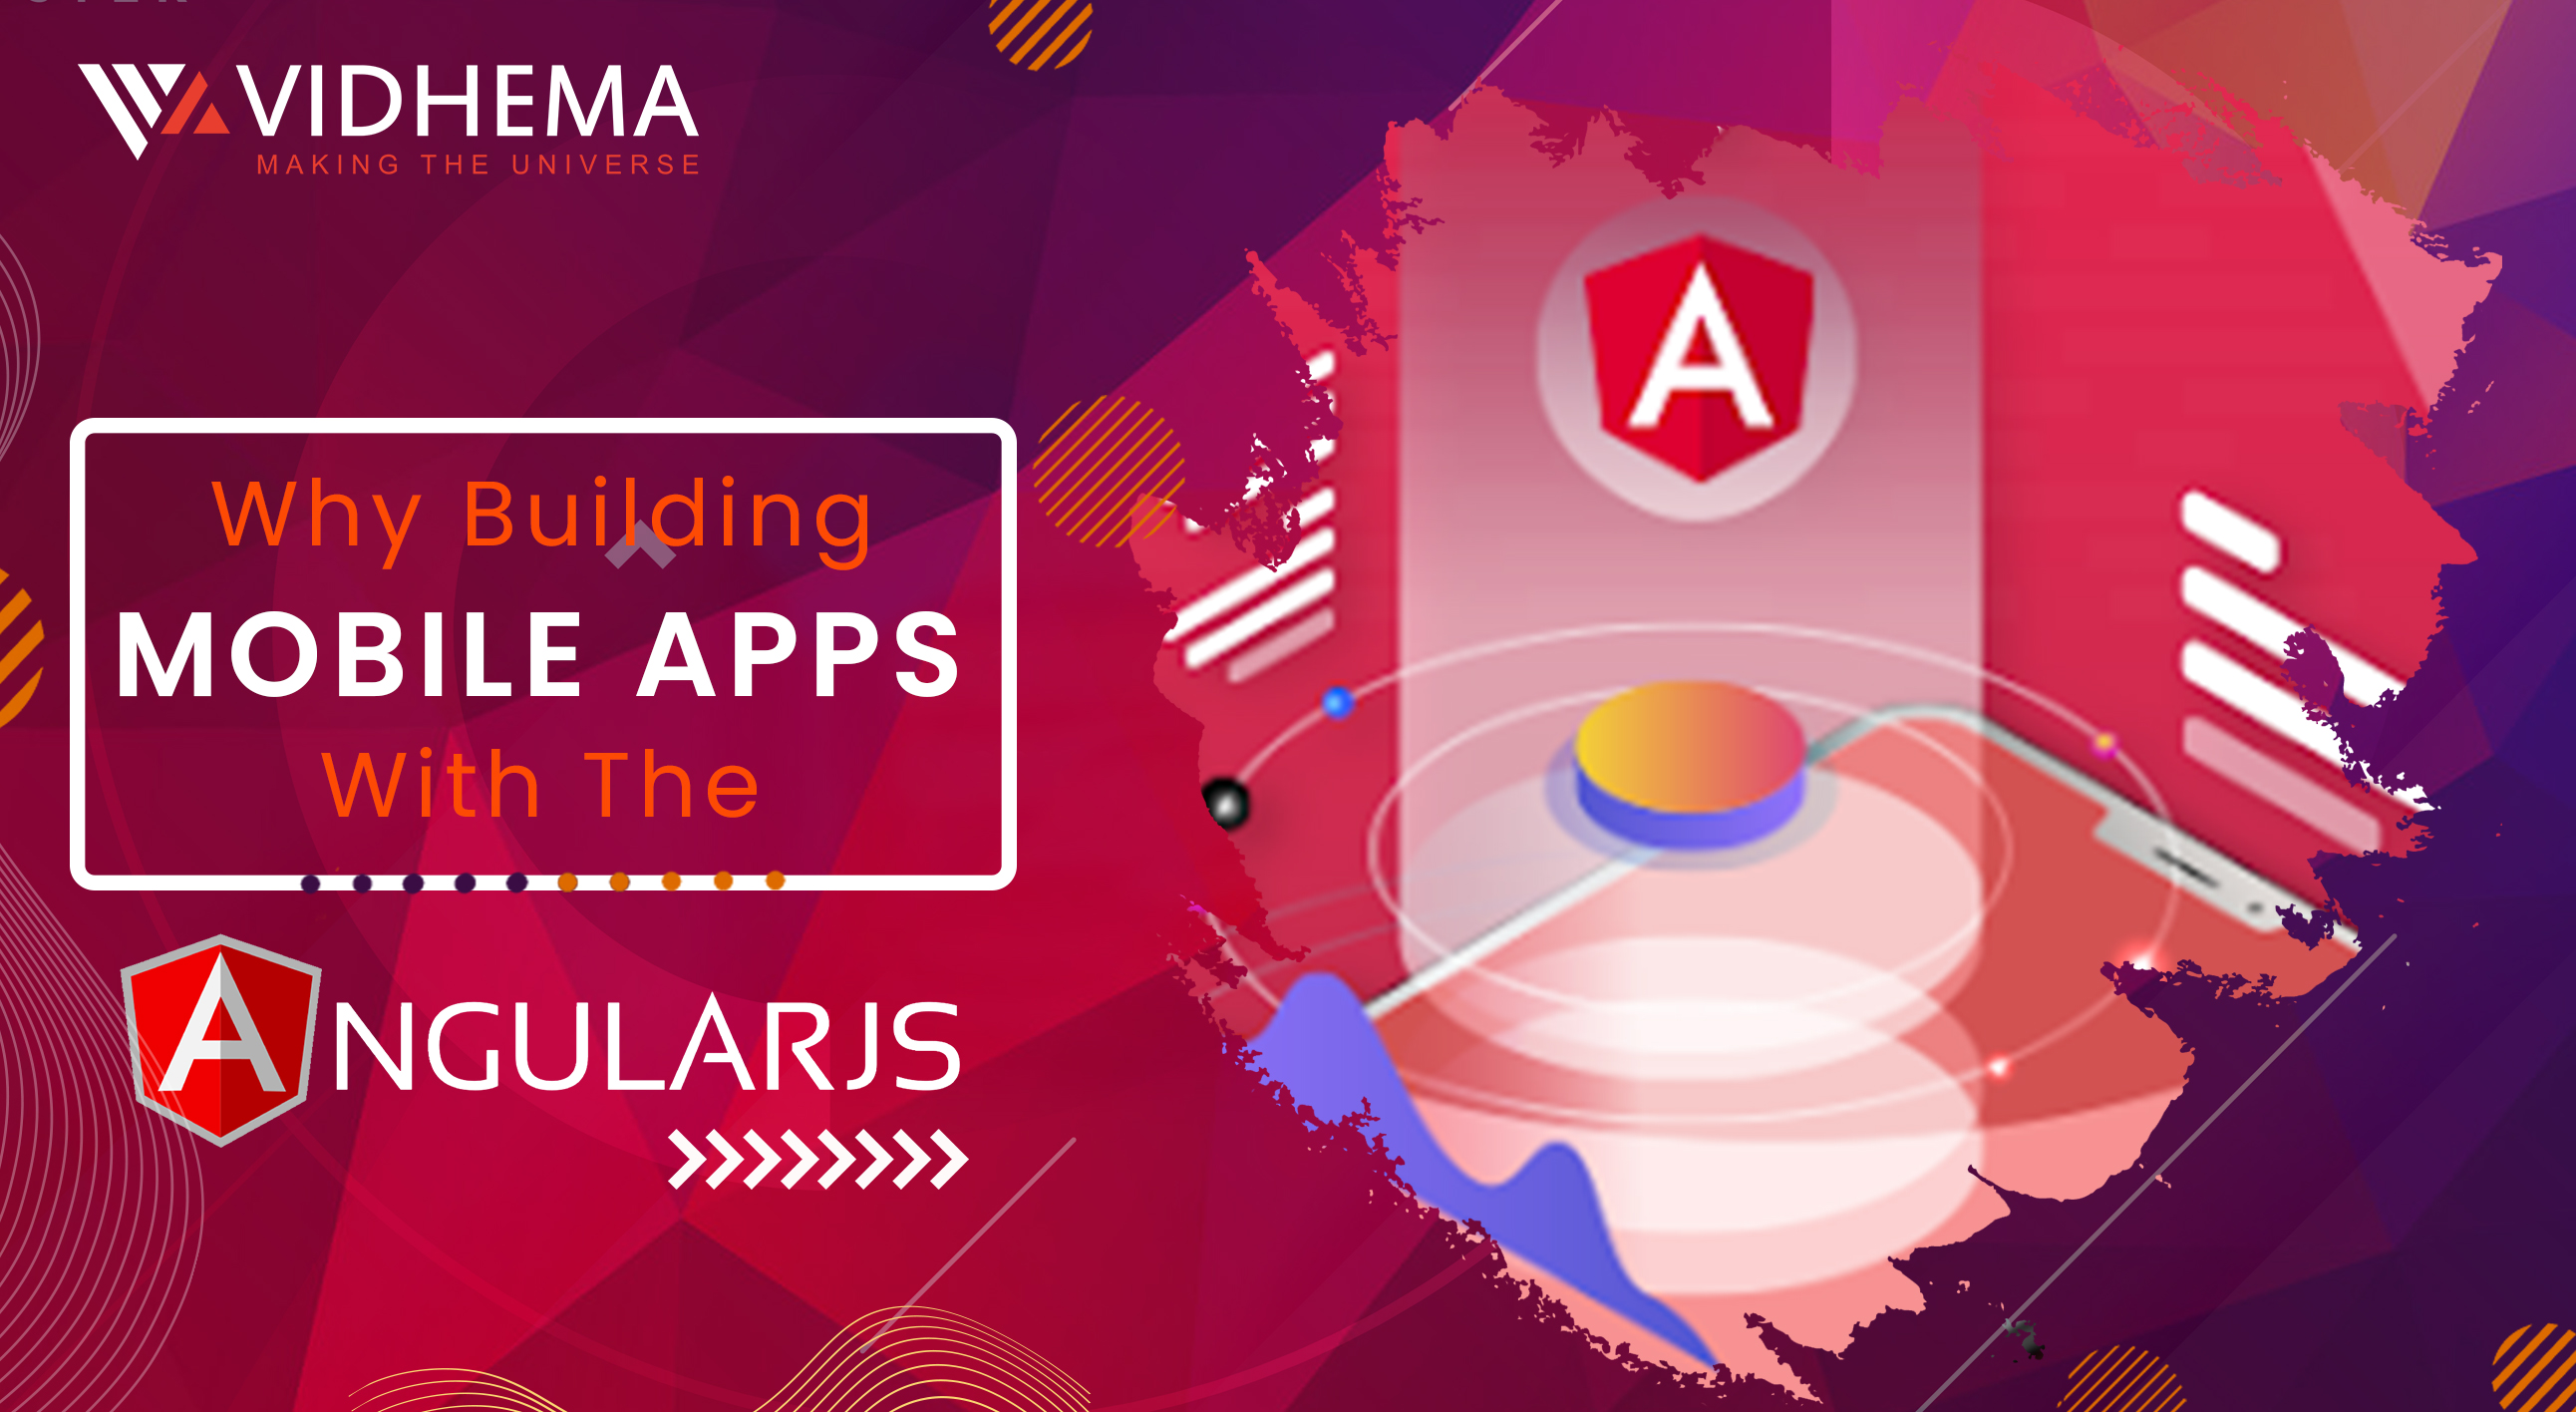 Why Building Mobile Apps With The AngularJS